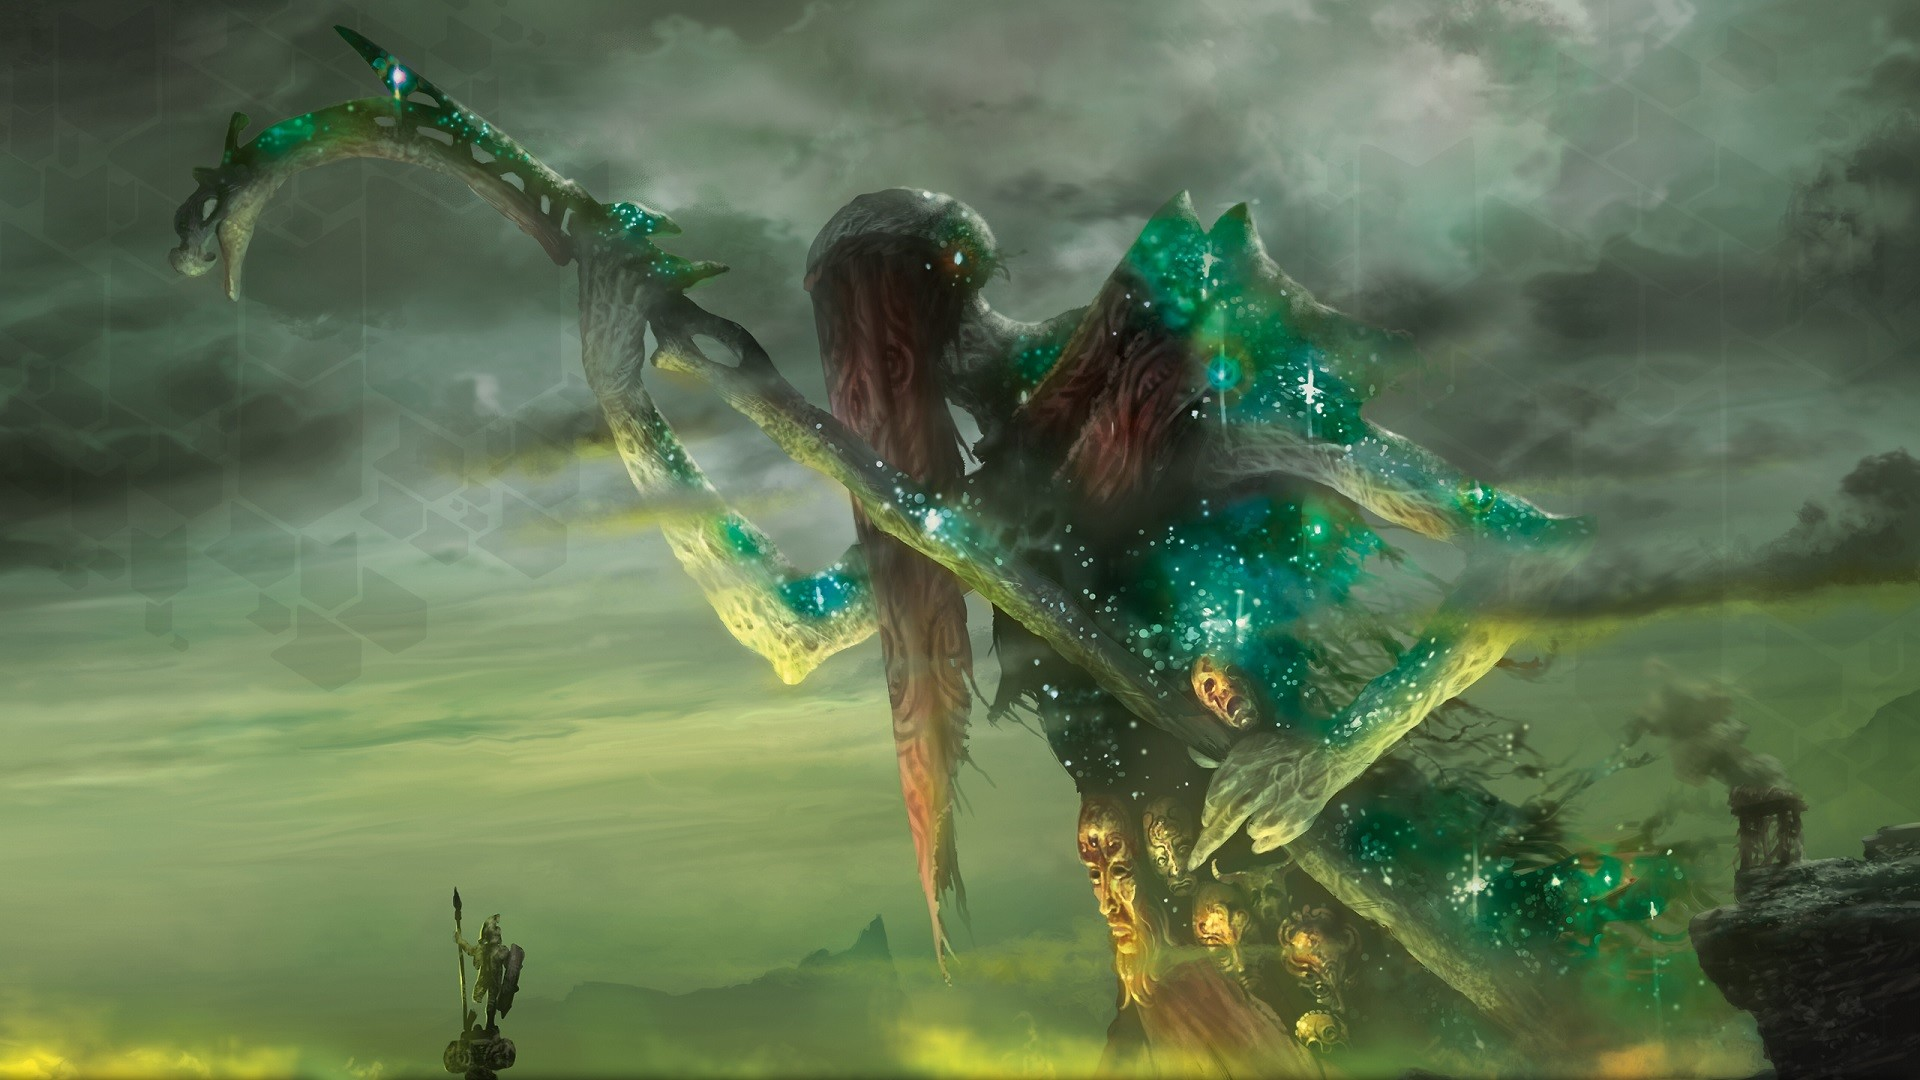 Magic The Gathering Wallpaper Land 82 Pictures